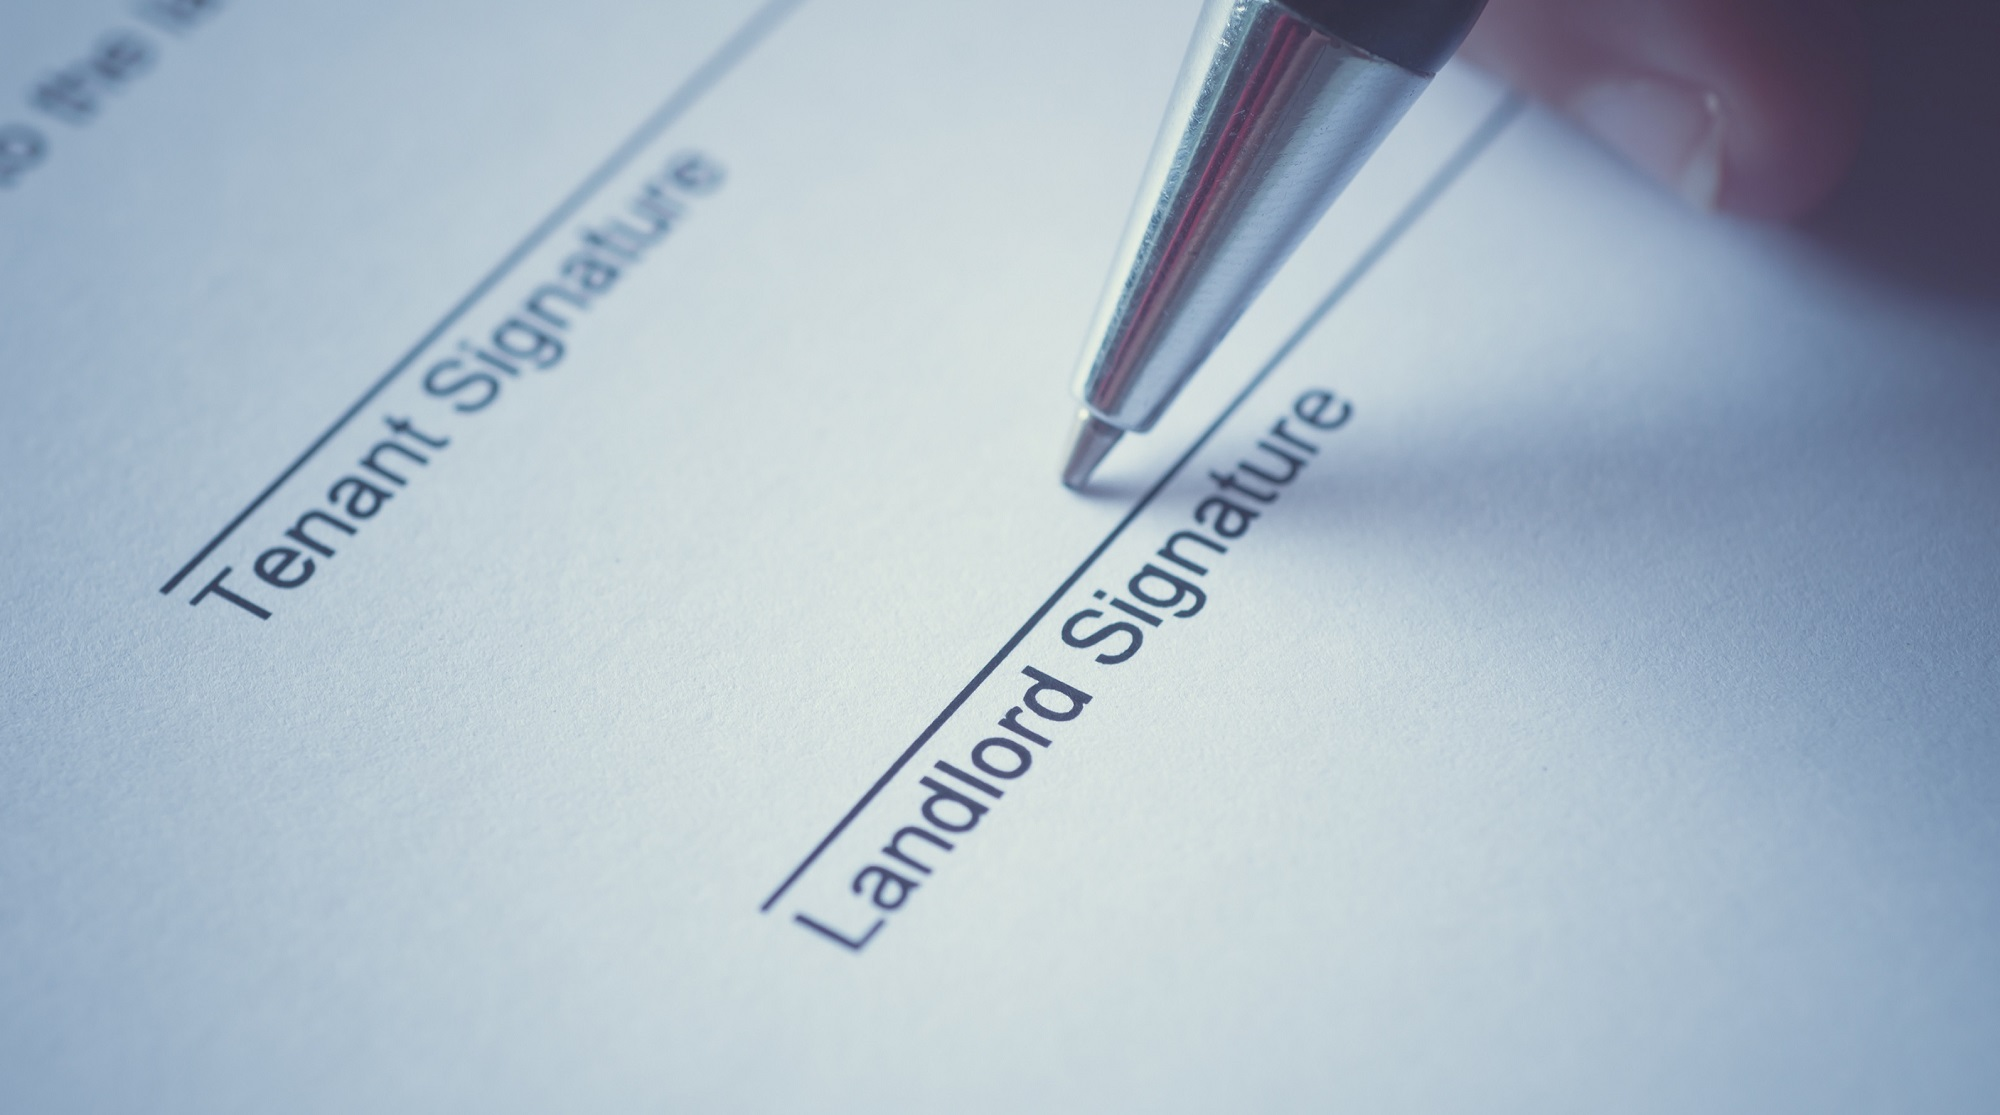 Tenancy agreement problems (and how to avoid them)